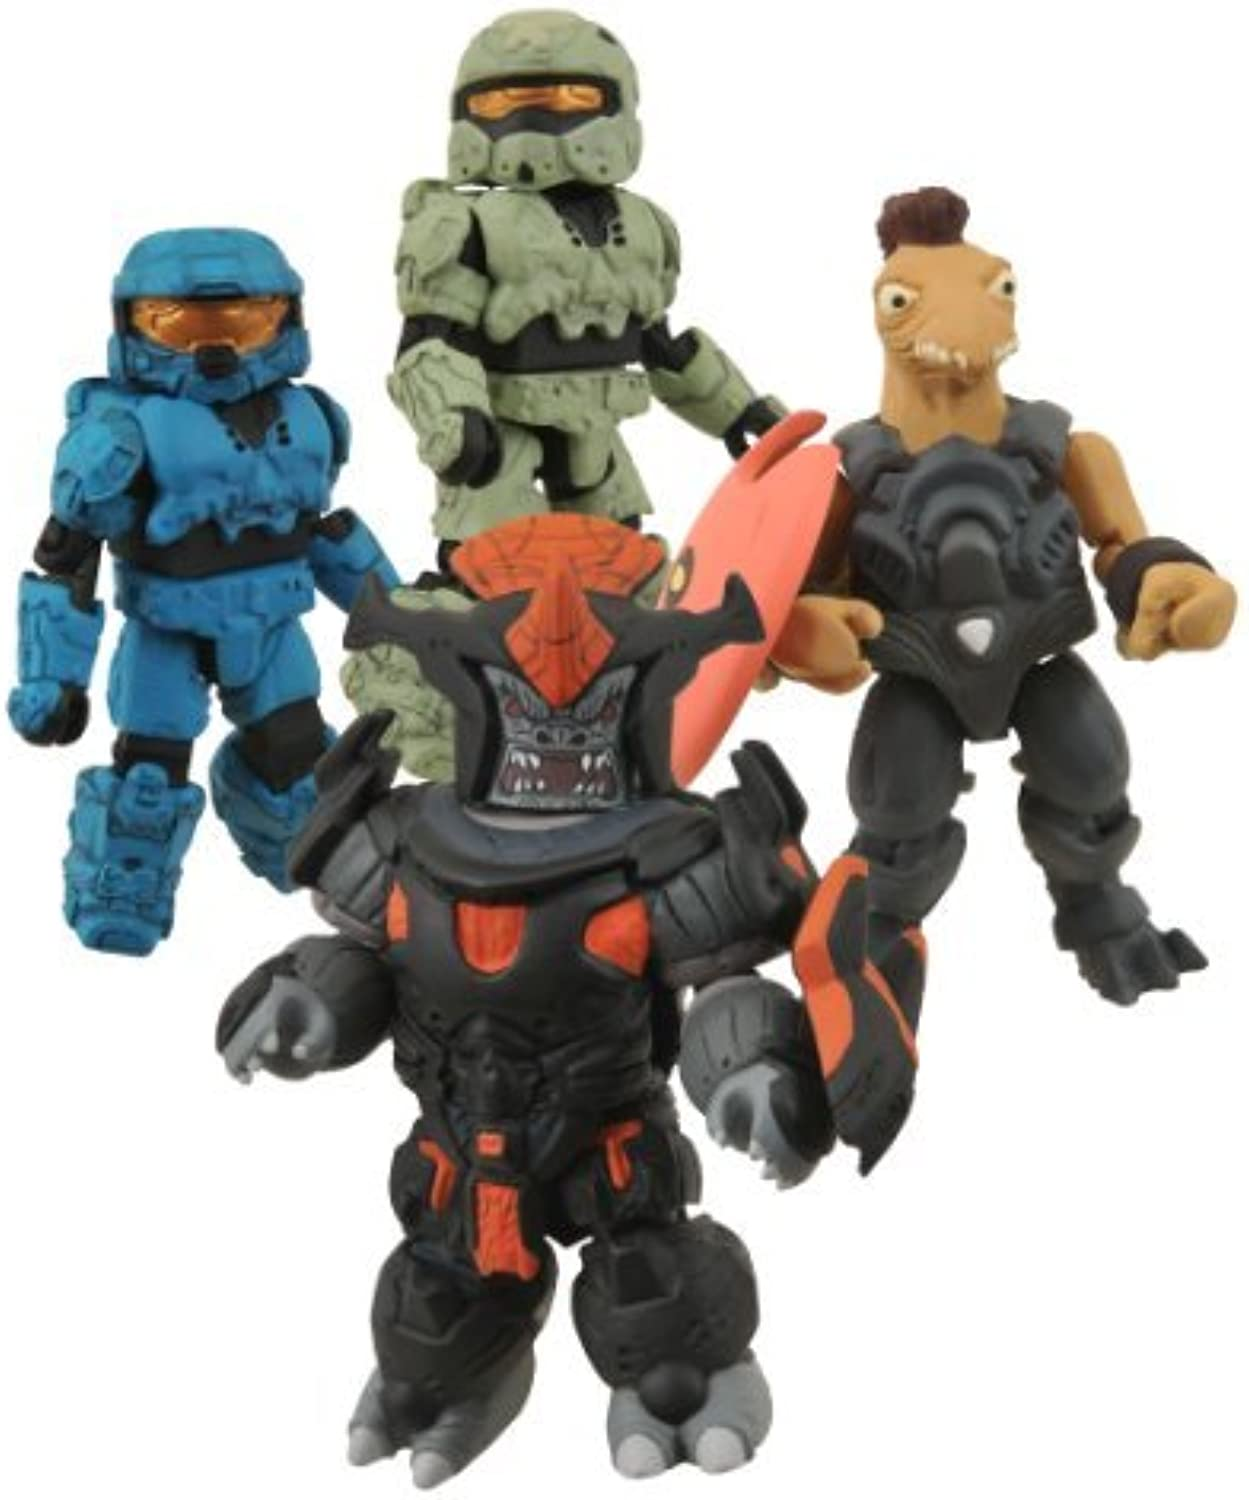 Diamond Select Toys Halo  Minimates Series 2 Box Set by Diamond Select